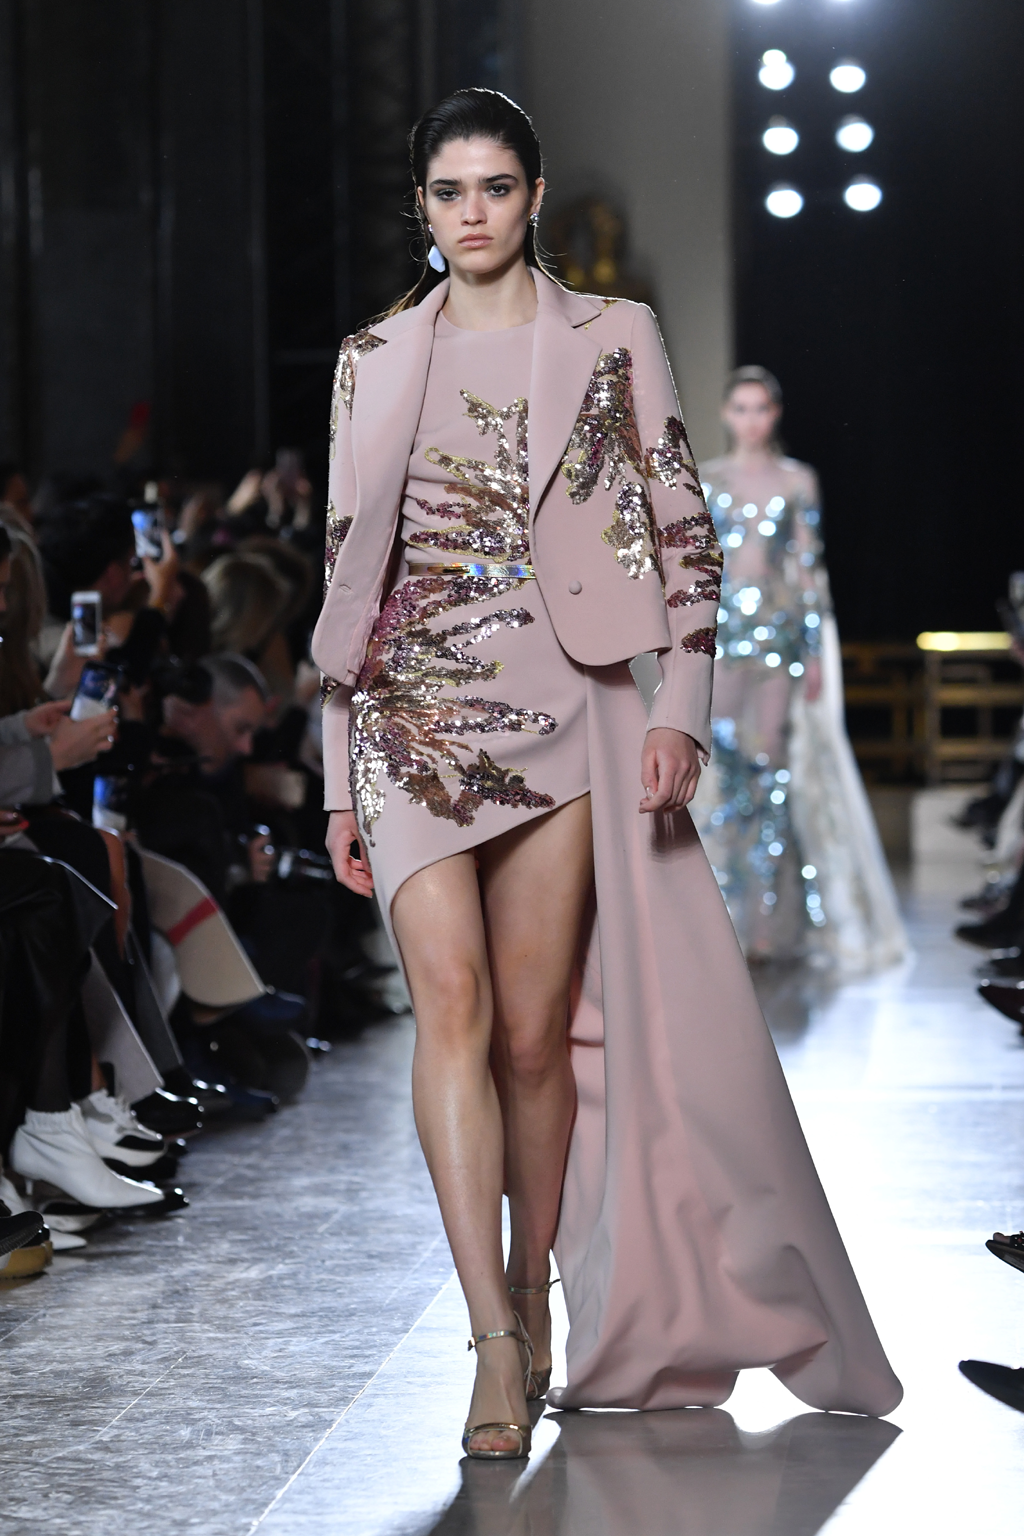 A model walks the runway during the Elie Saab Spring Summer 2019 show in a soft pink dress with beaded embellishments as part of Paris Fashion Week on January 23, 2019 in Paris, France. Paris Couture (Photo by Pascal Le Segretain/Getty Images)